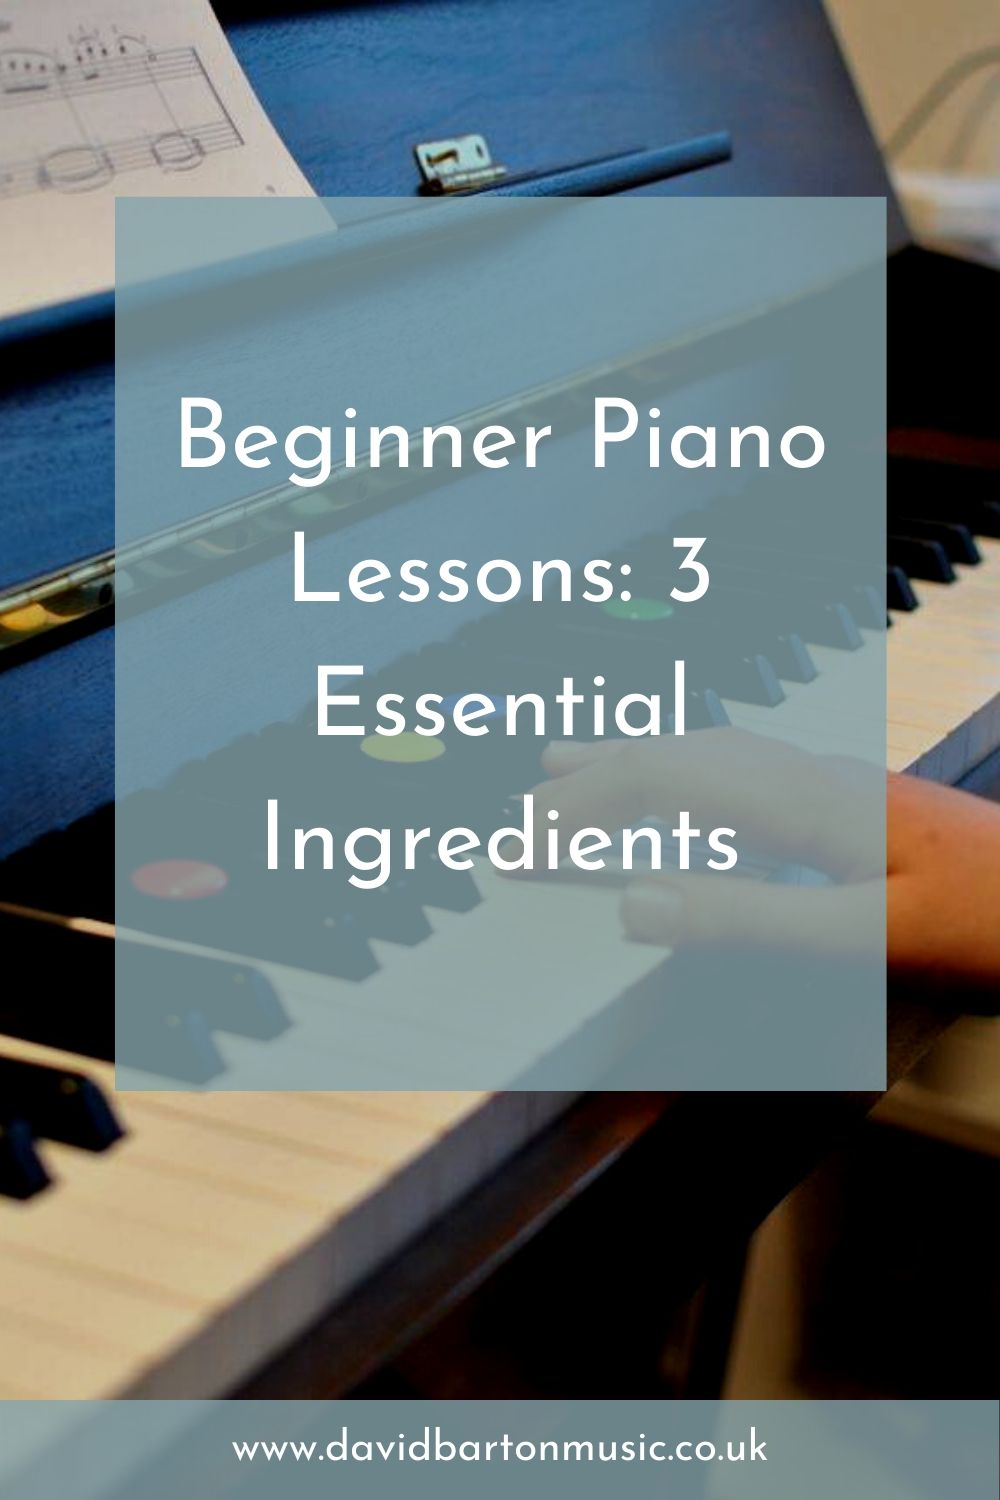 Beginner Piano Lessons: 3 Essential Ingredients - pinnable image for Pinterest